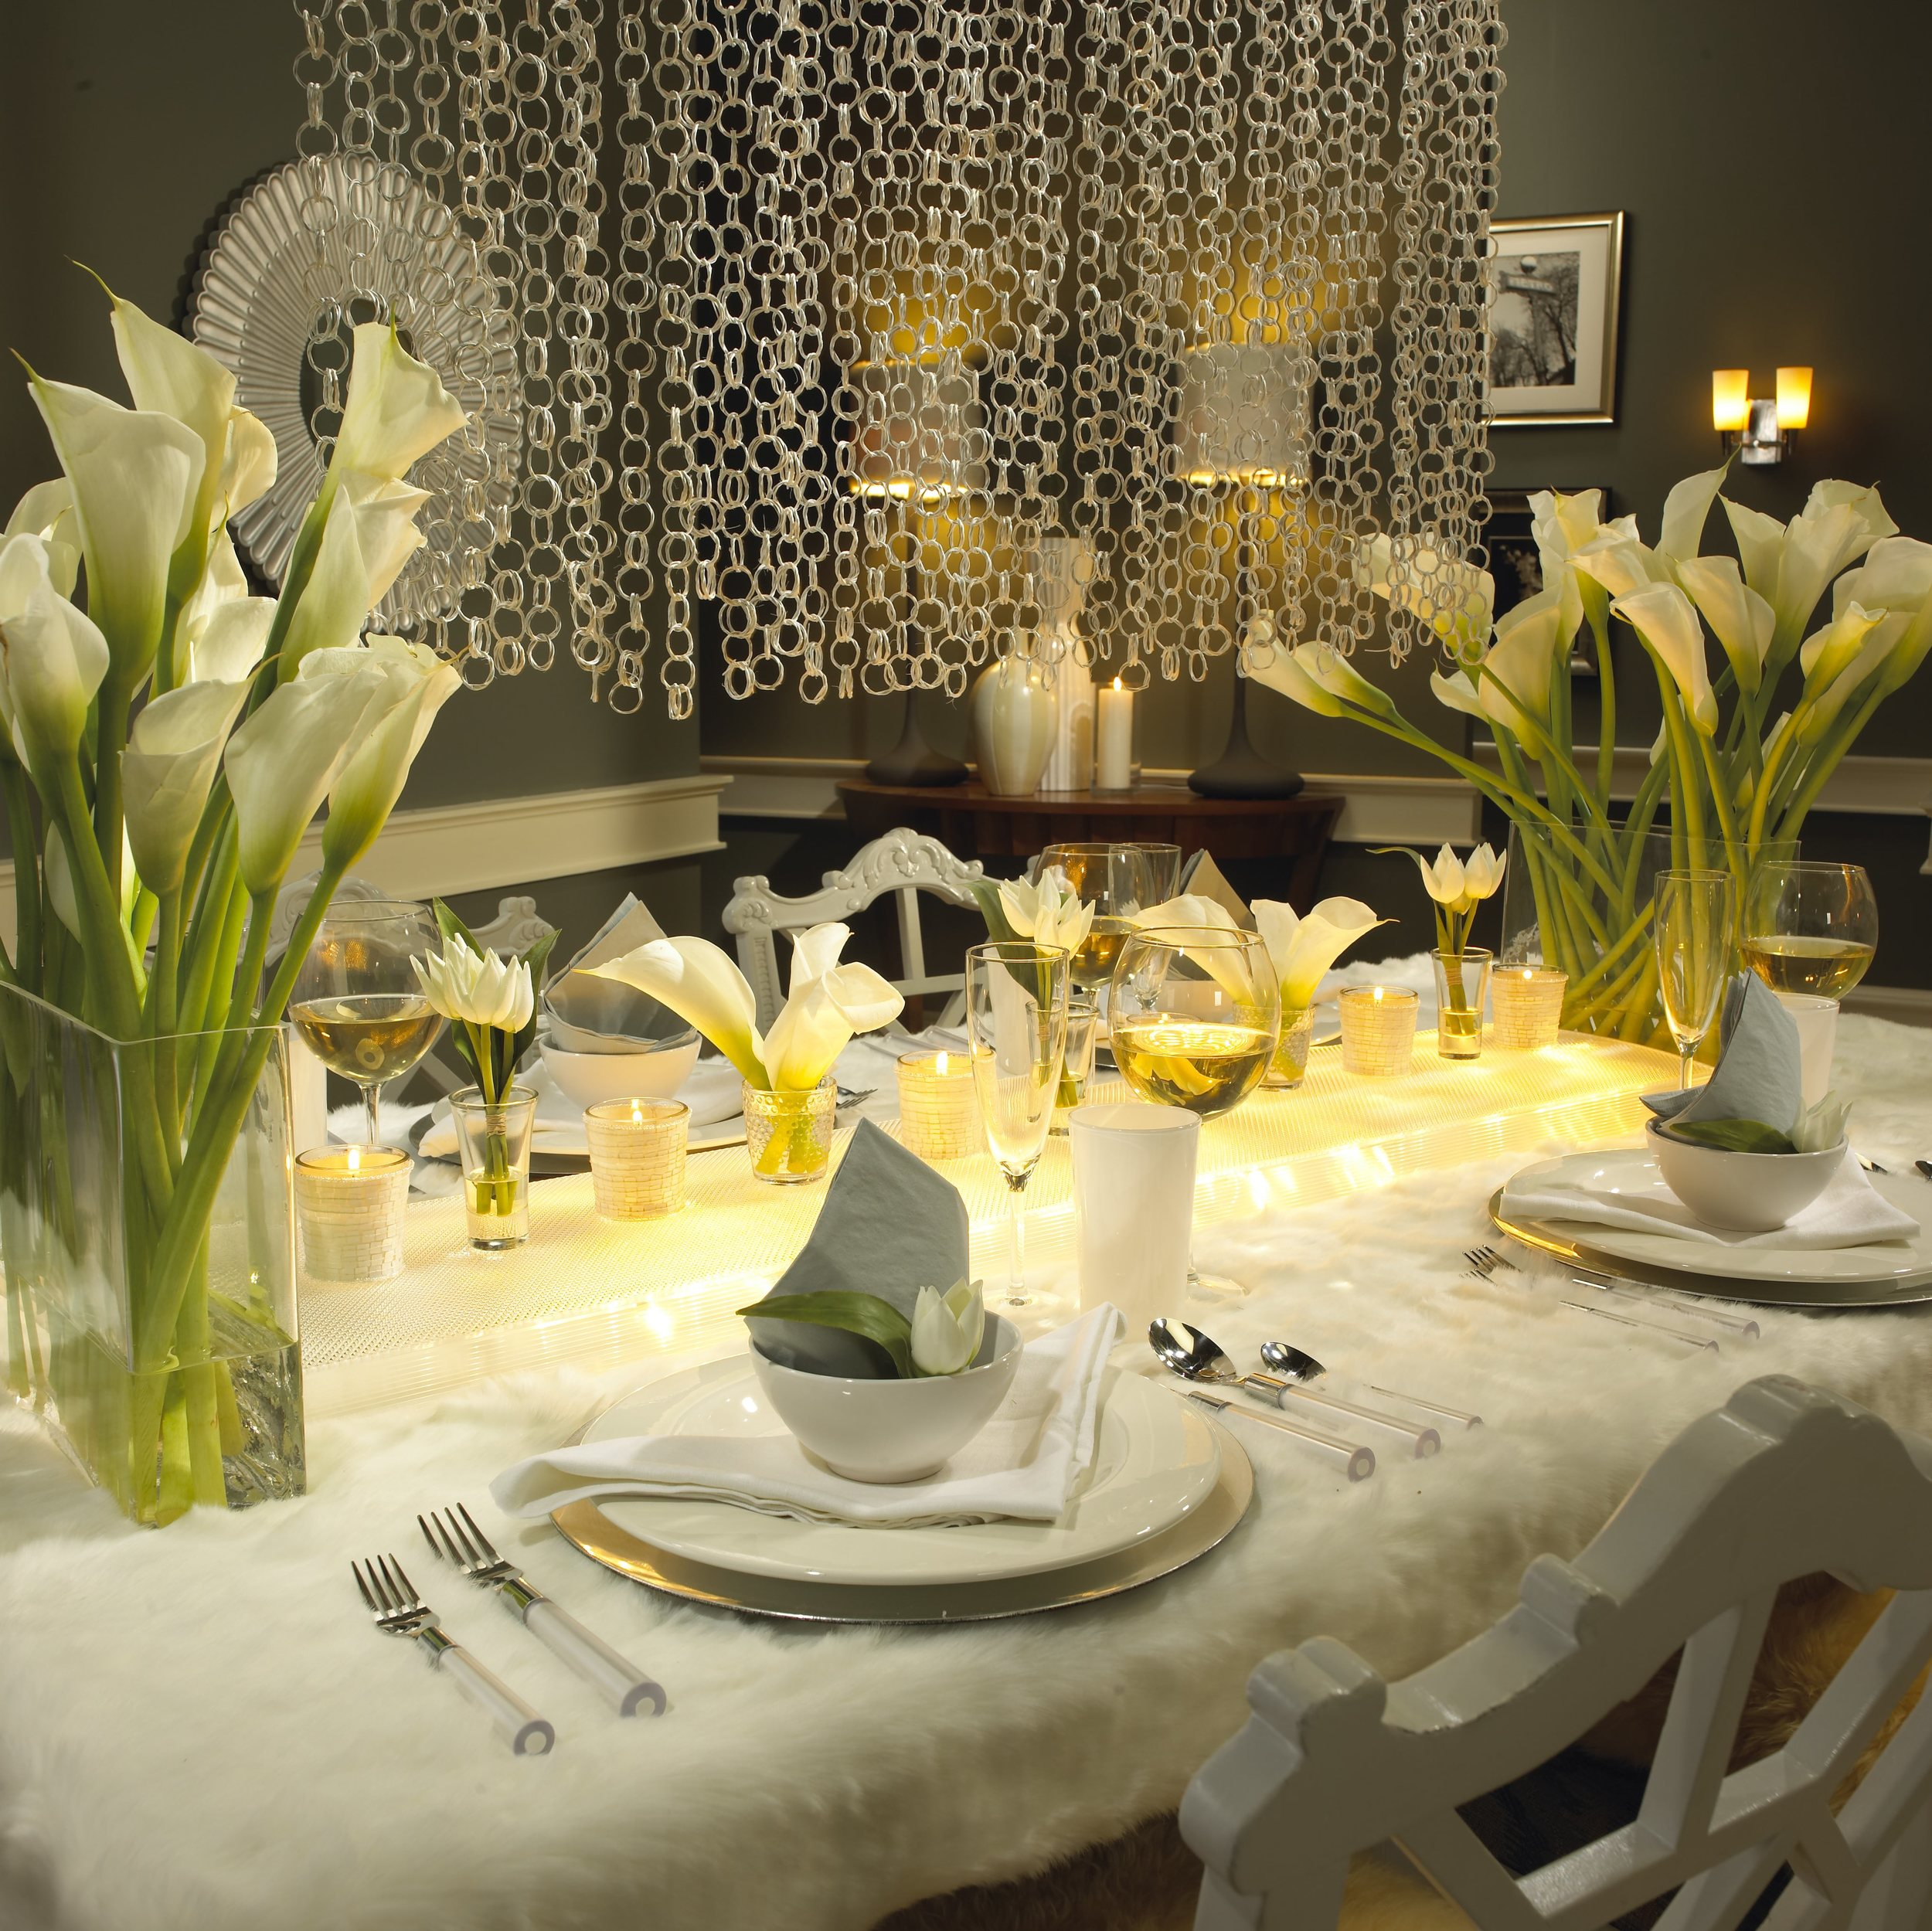 michaelmurphydesign-dining .jpg